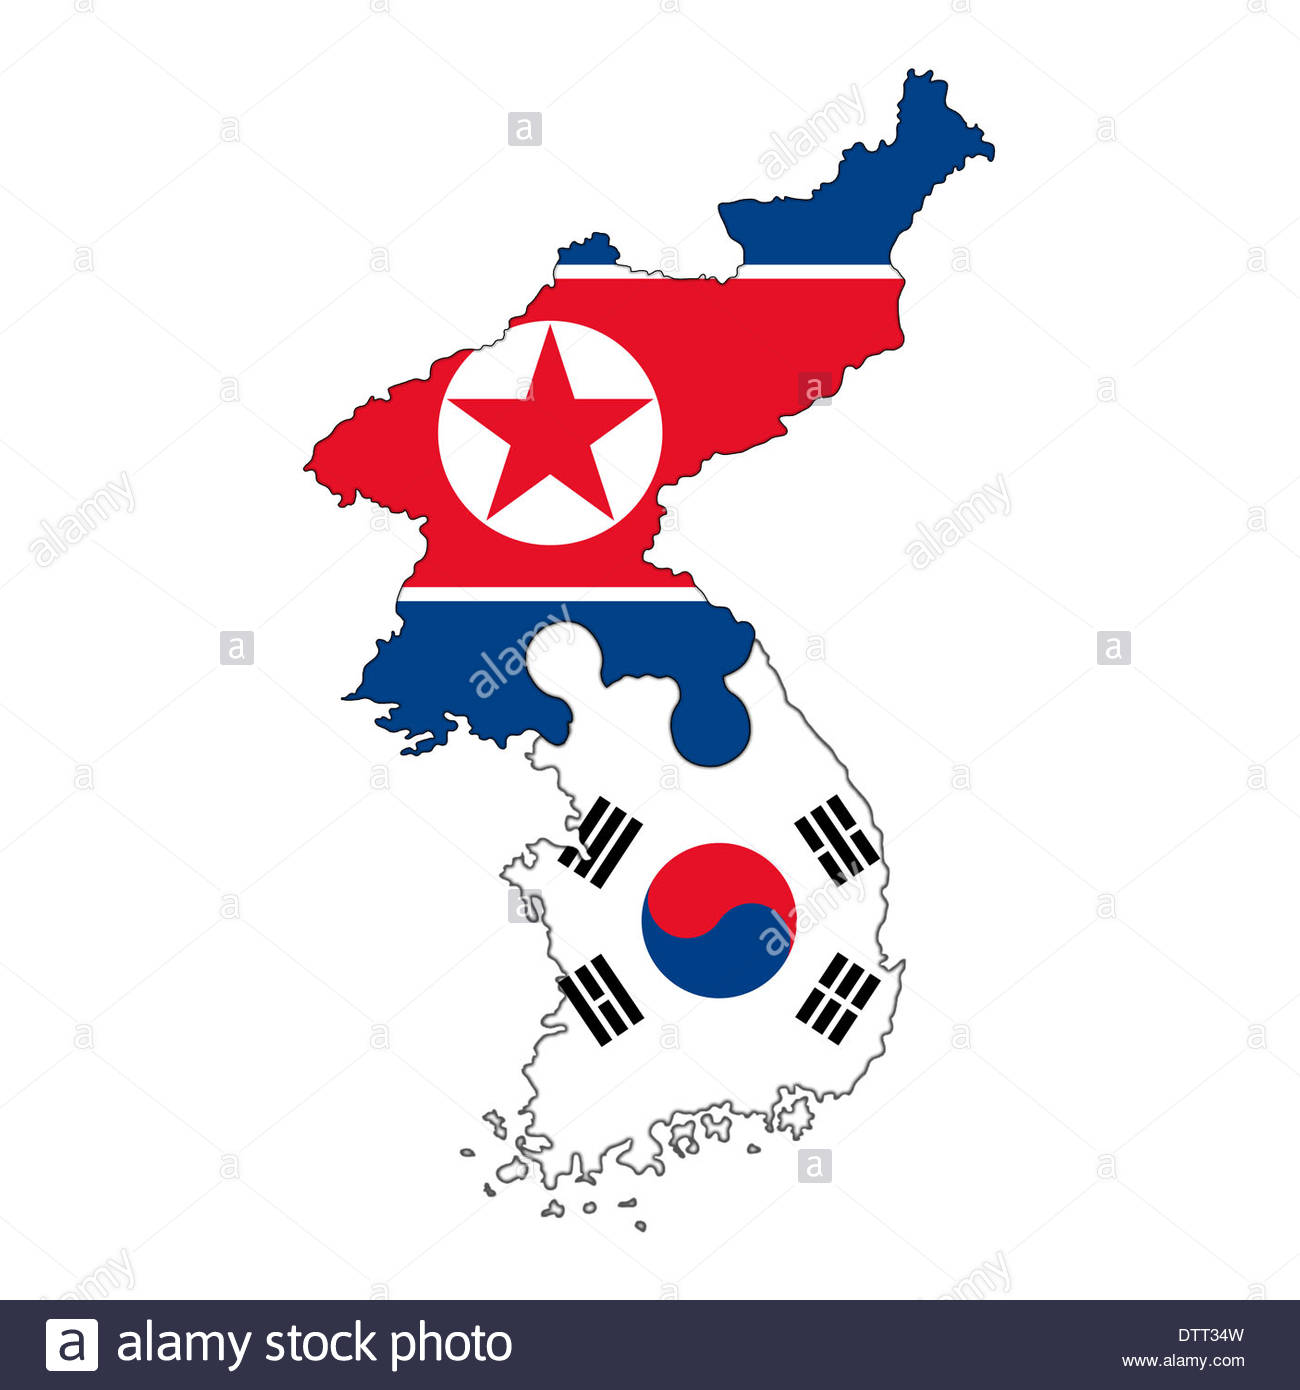 North Korea And South Korea Essay North Korea Essay Paper Do My Math Problems also Topics For Essays In English  Article Marketing Service